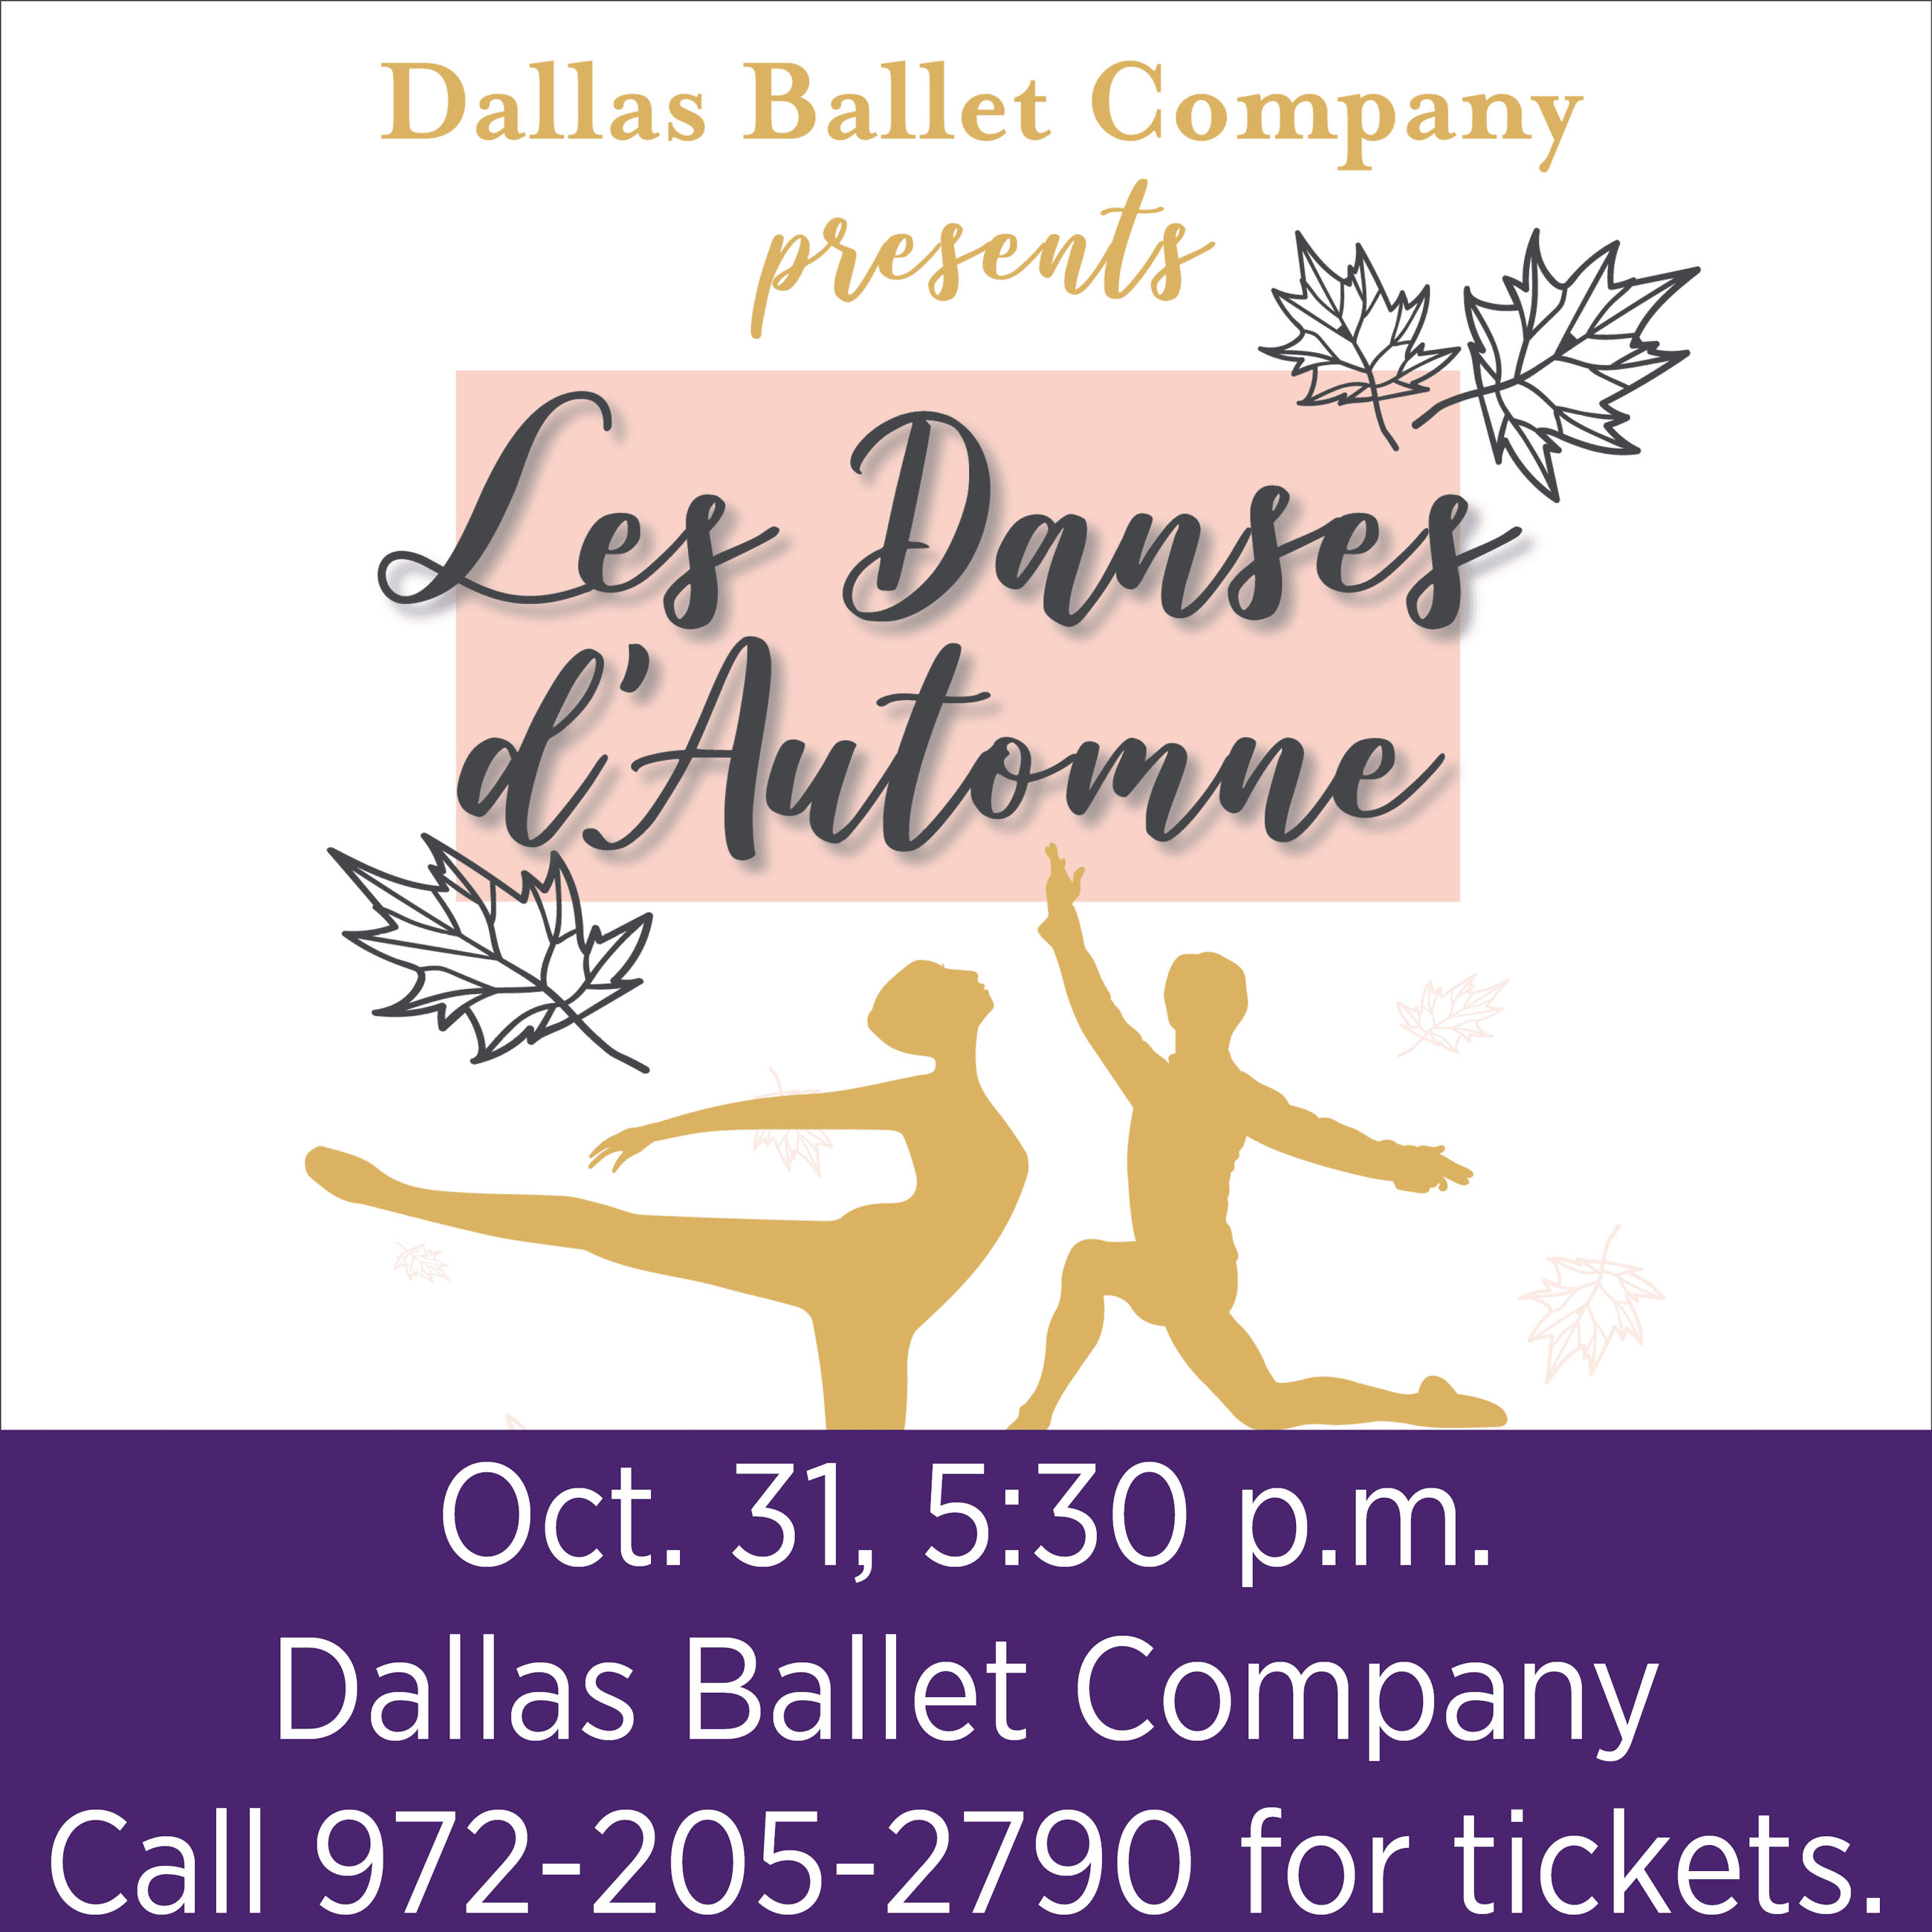 Dallas Ballet Company